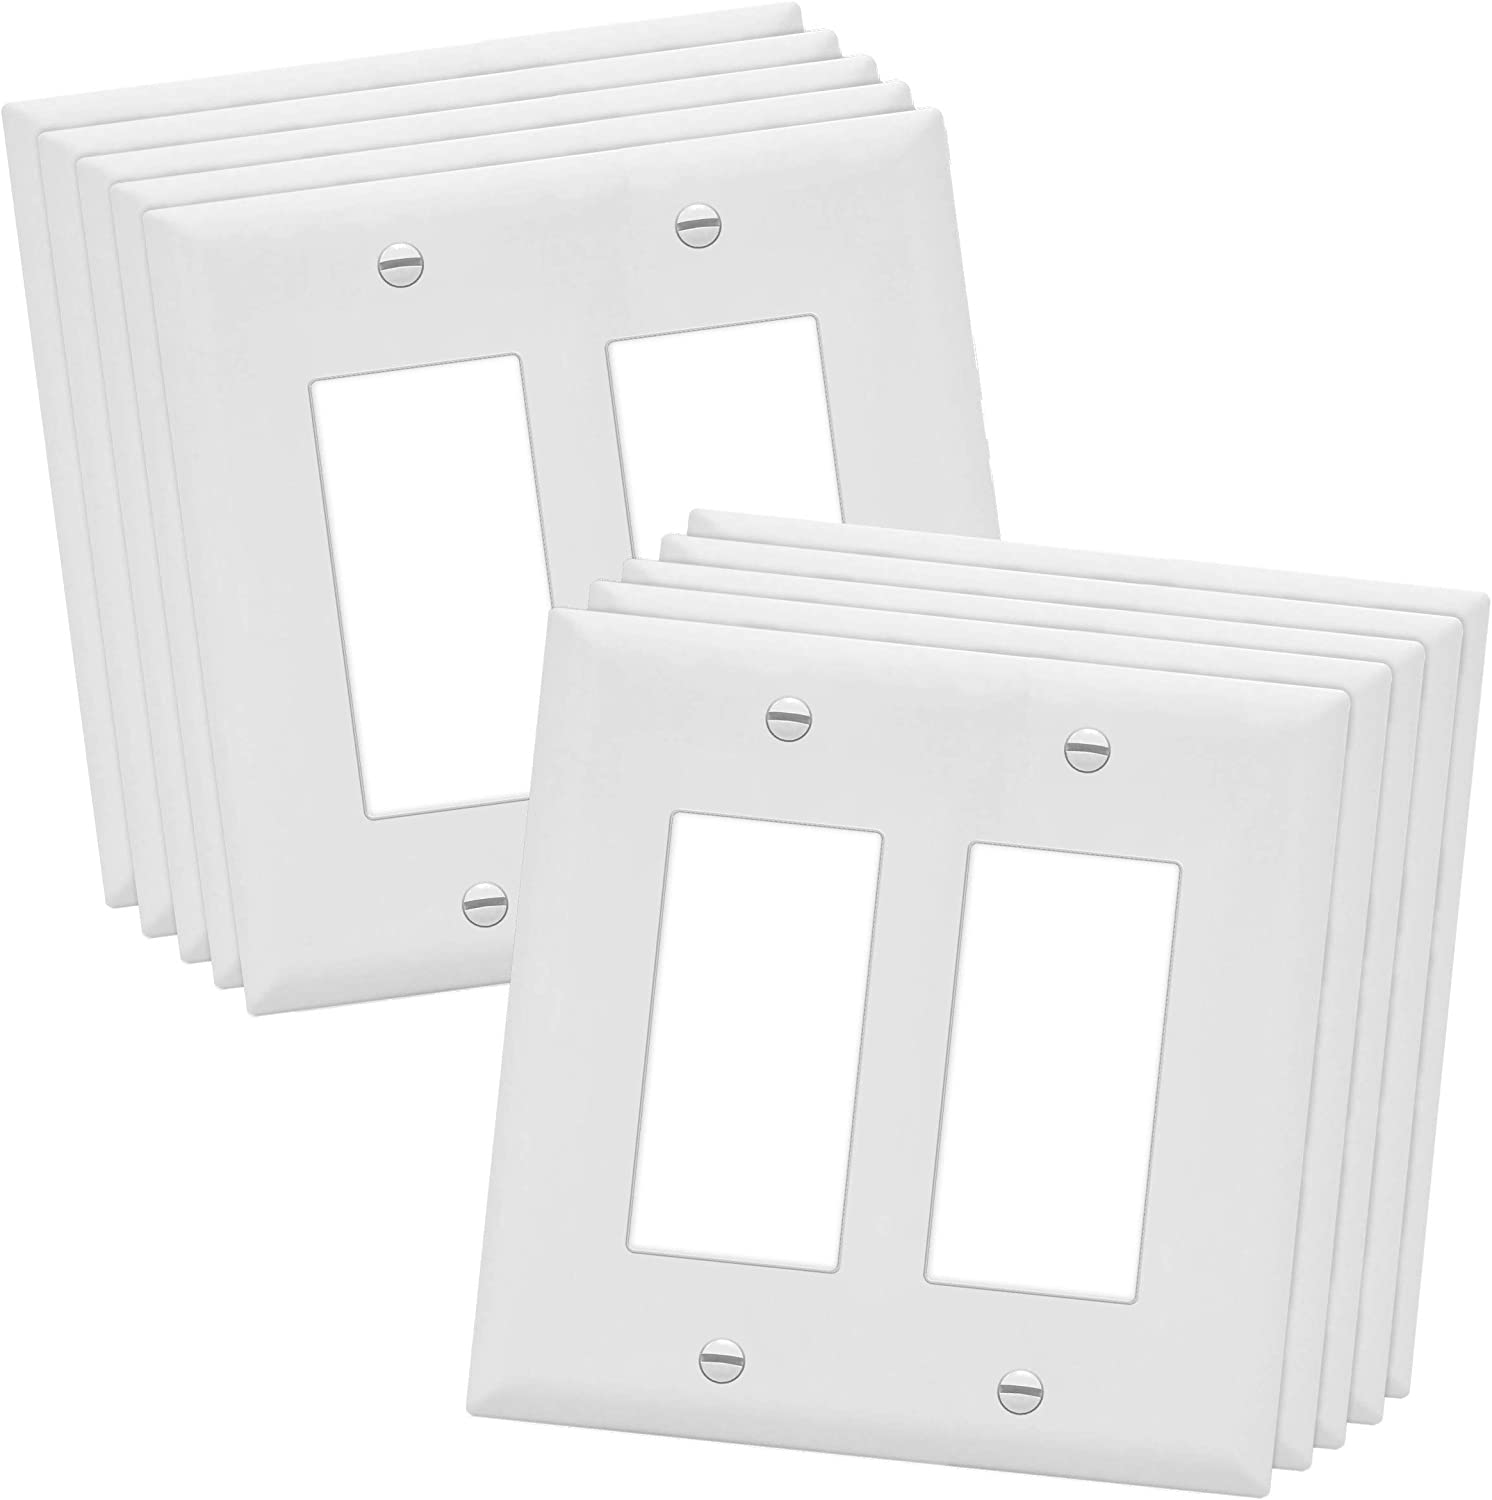 """ENERLITES Decorator Light Switch or Receptacle Outlet Wall Plate, Midway Size 2-Gang 4.88"""" x 4.92"""", Polycarbonate Thermoplastic, UL Listed, 8832M-W-10PCS, White (10 Pack)"""